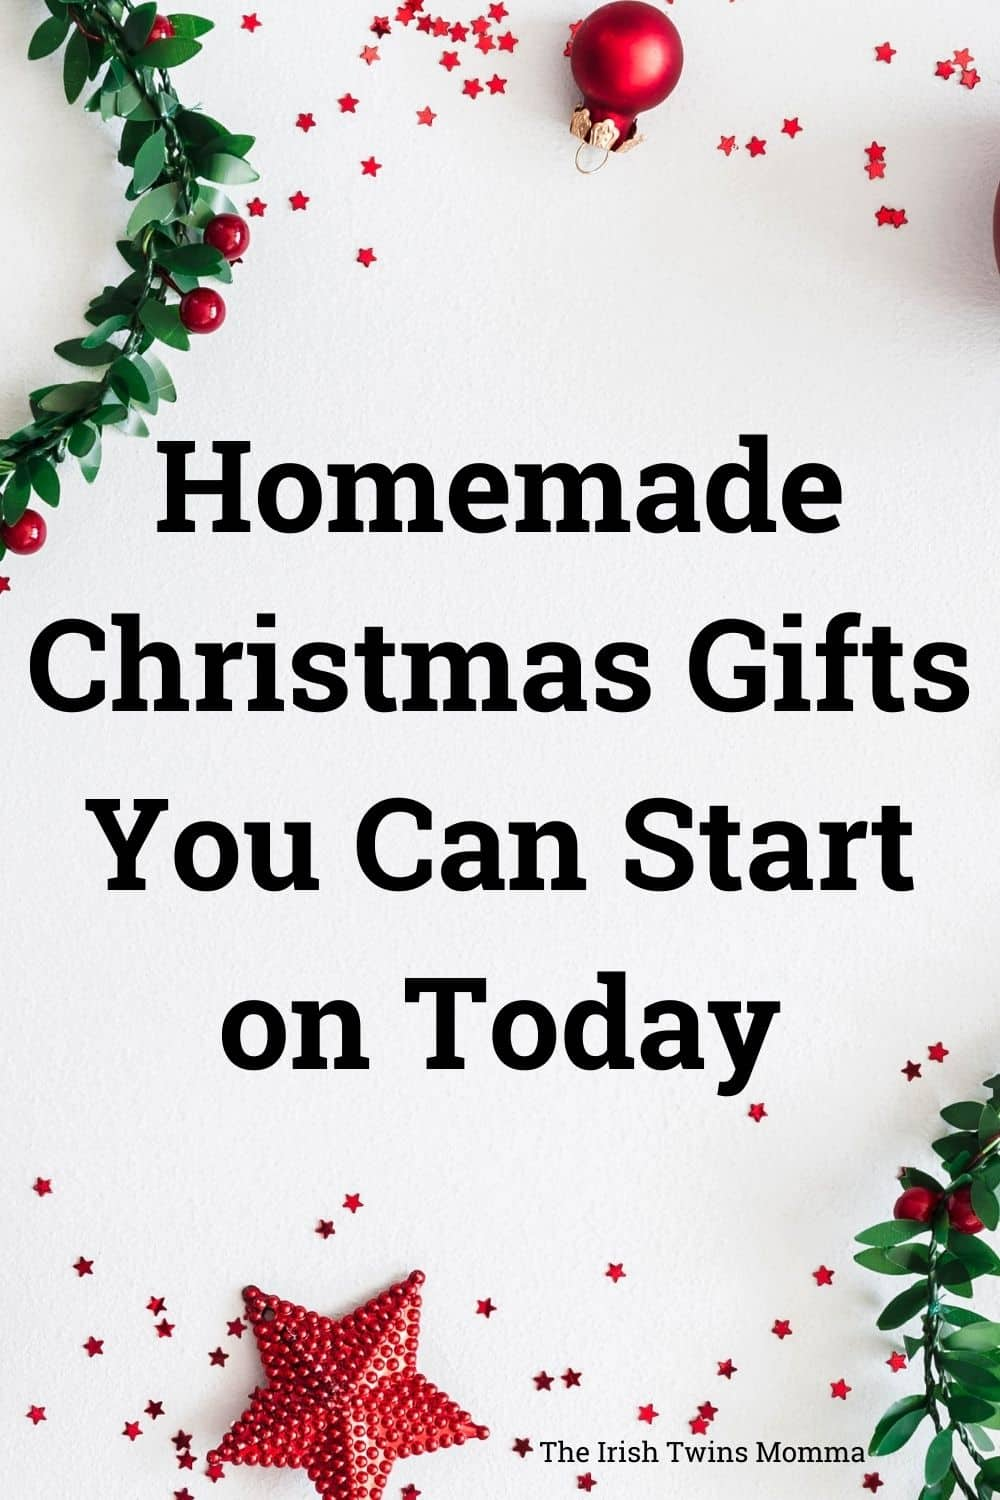 Homemade Christmas Gifts You Can Start on Today